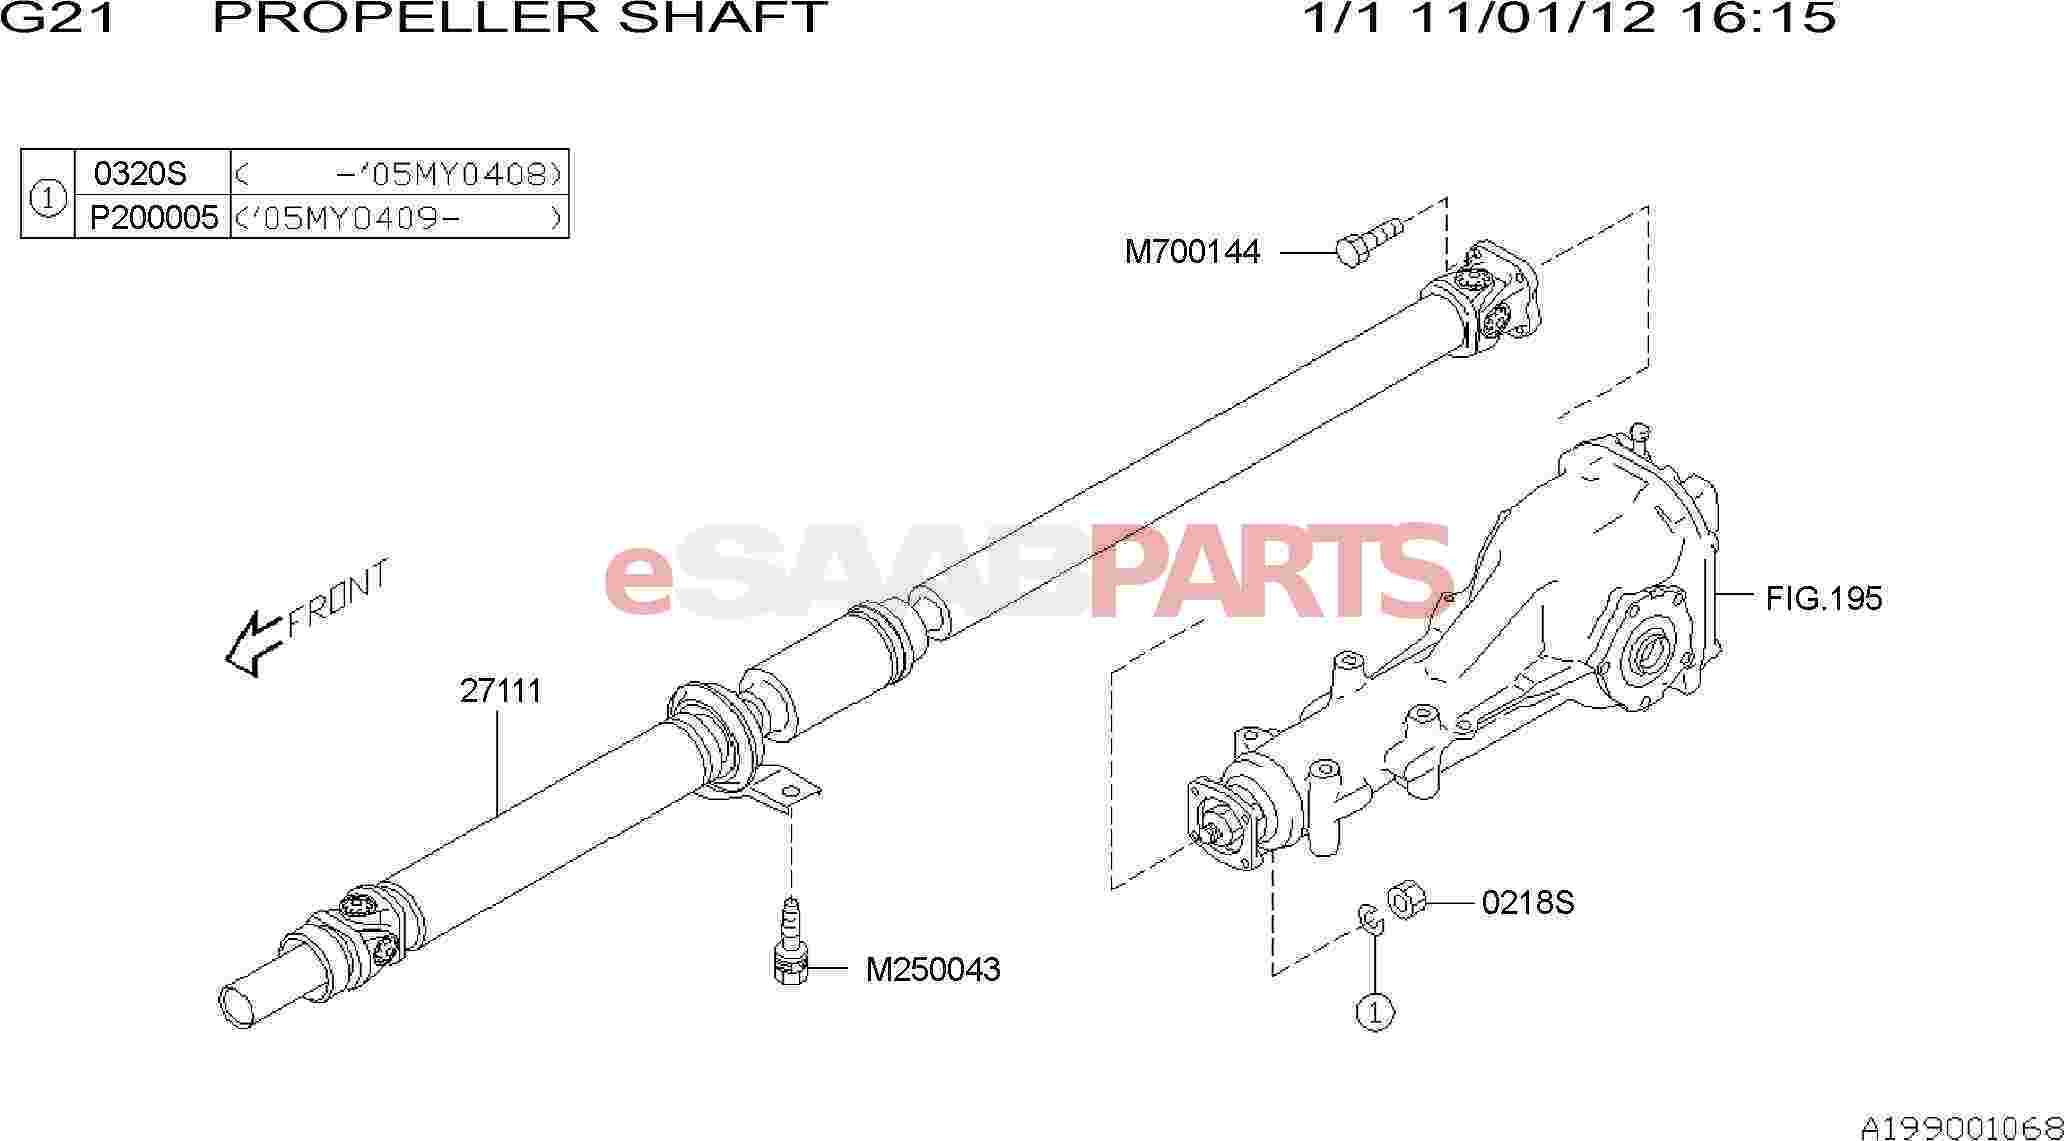 Saab Propeller Shaft Assembly